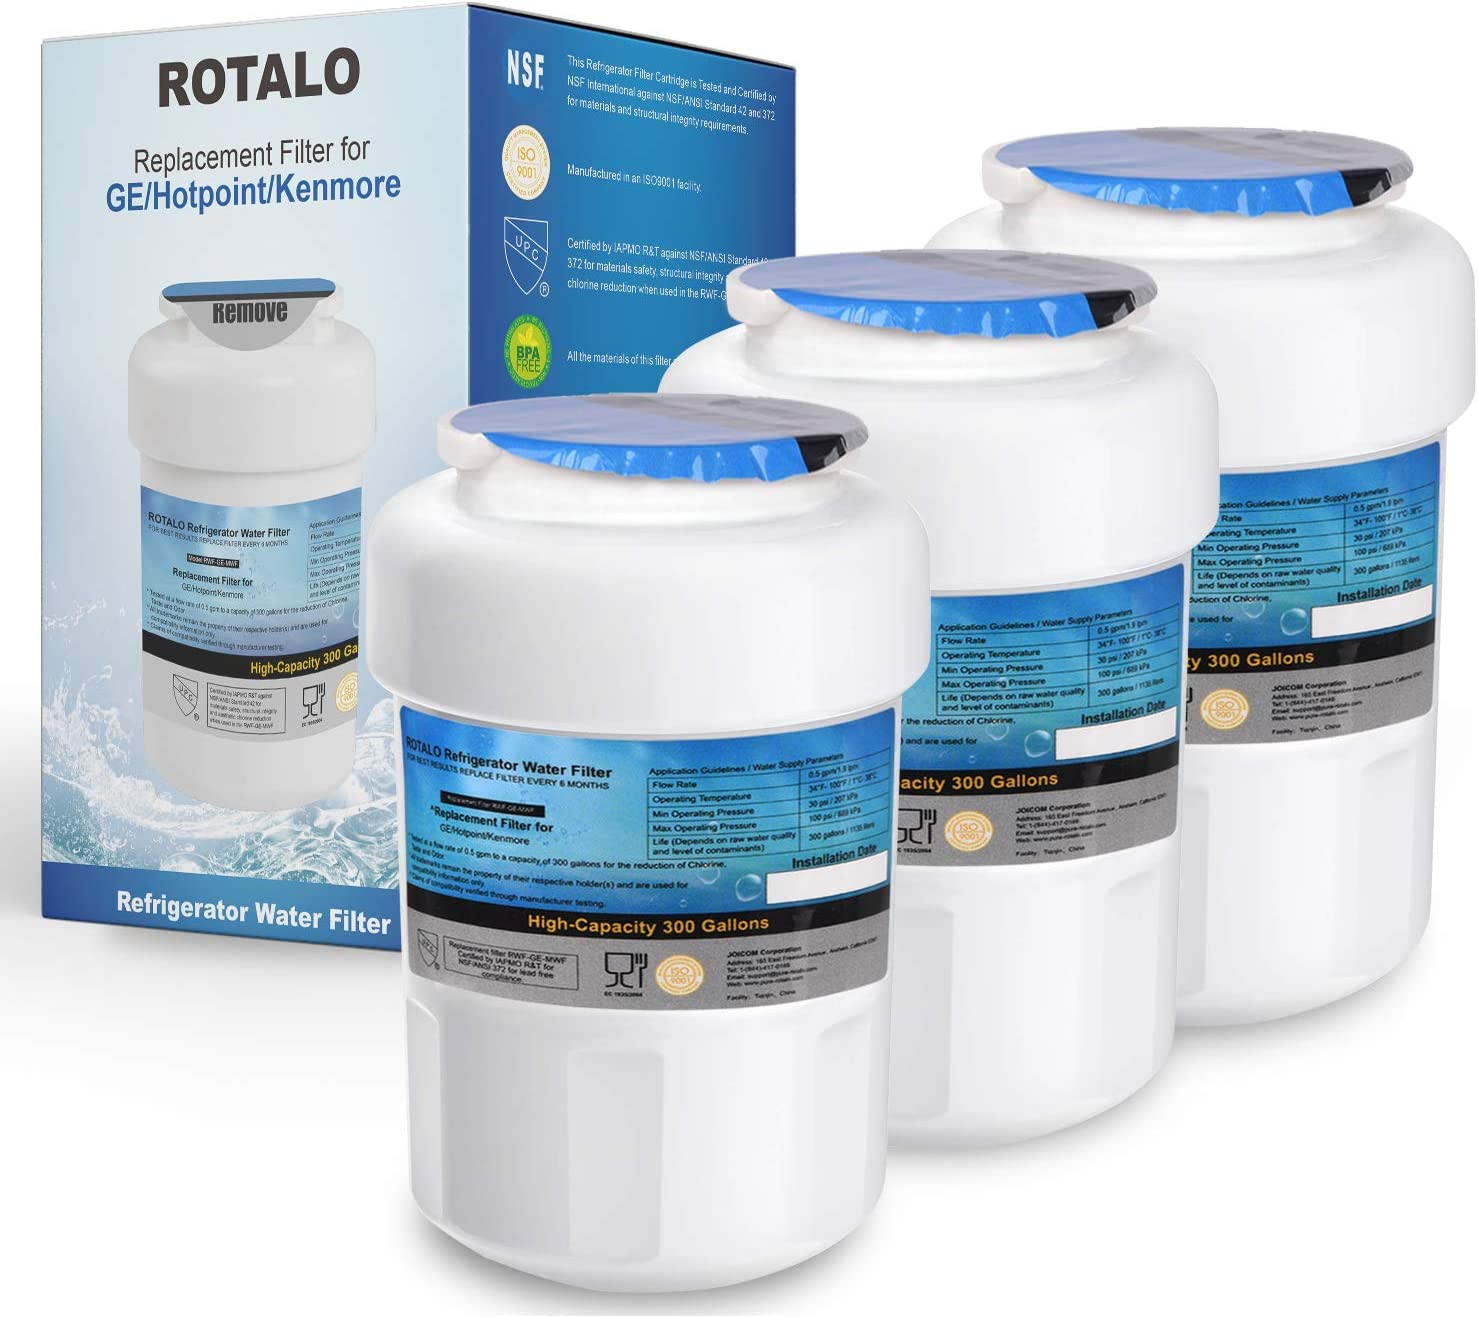 ROTALO GE MWF Refrigerator Water Filter Replacement for GE MWF SmartWater MWFA MWFP GWF GWFA Kenmore 9991 46-9991 469991, NSF 42 and 372 Certification (Pack of 3)